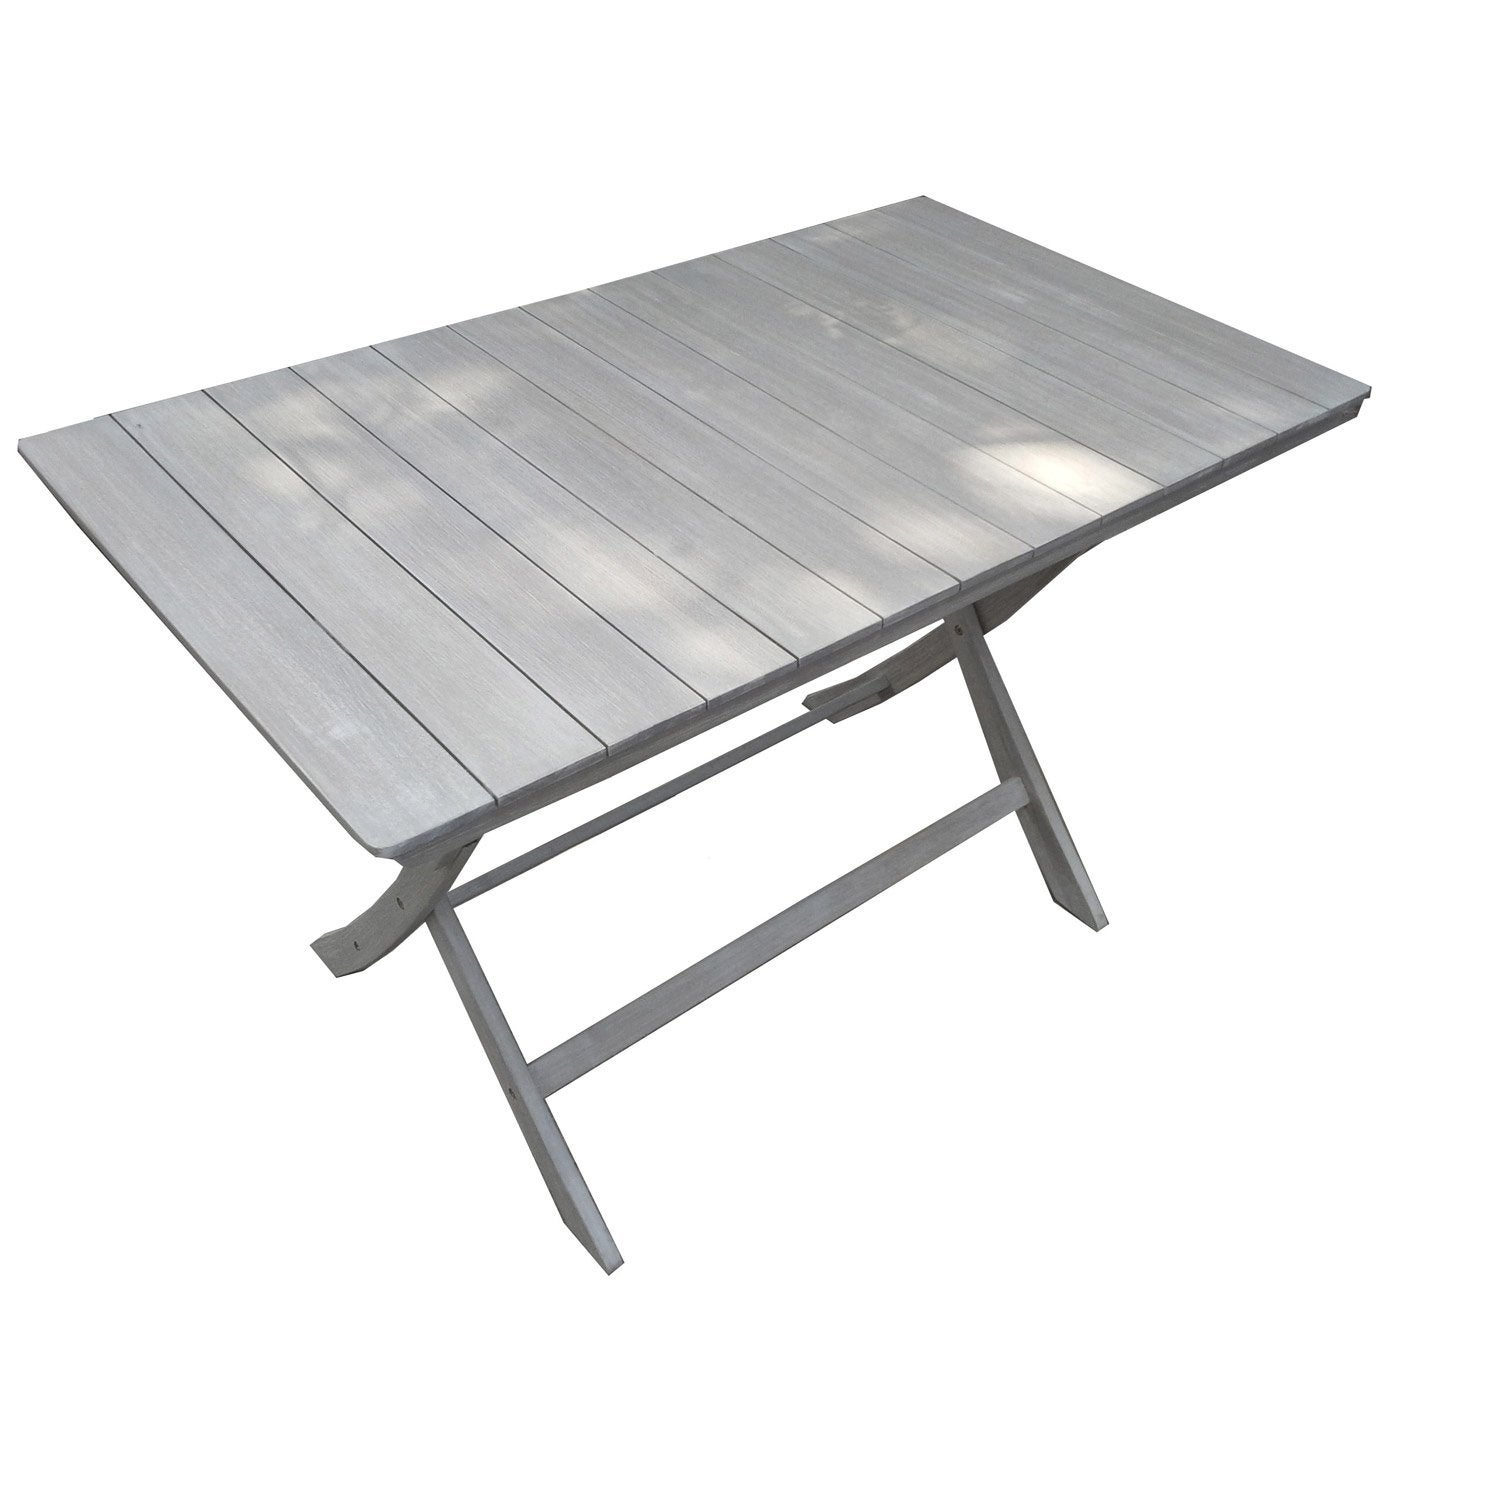 Table de jardin naterial portofino rectangulaire gris 4 for Farolas de jardin leroy merlin